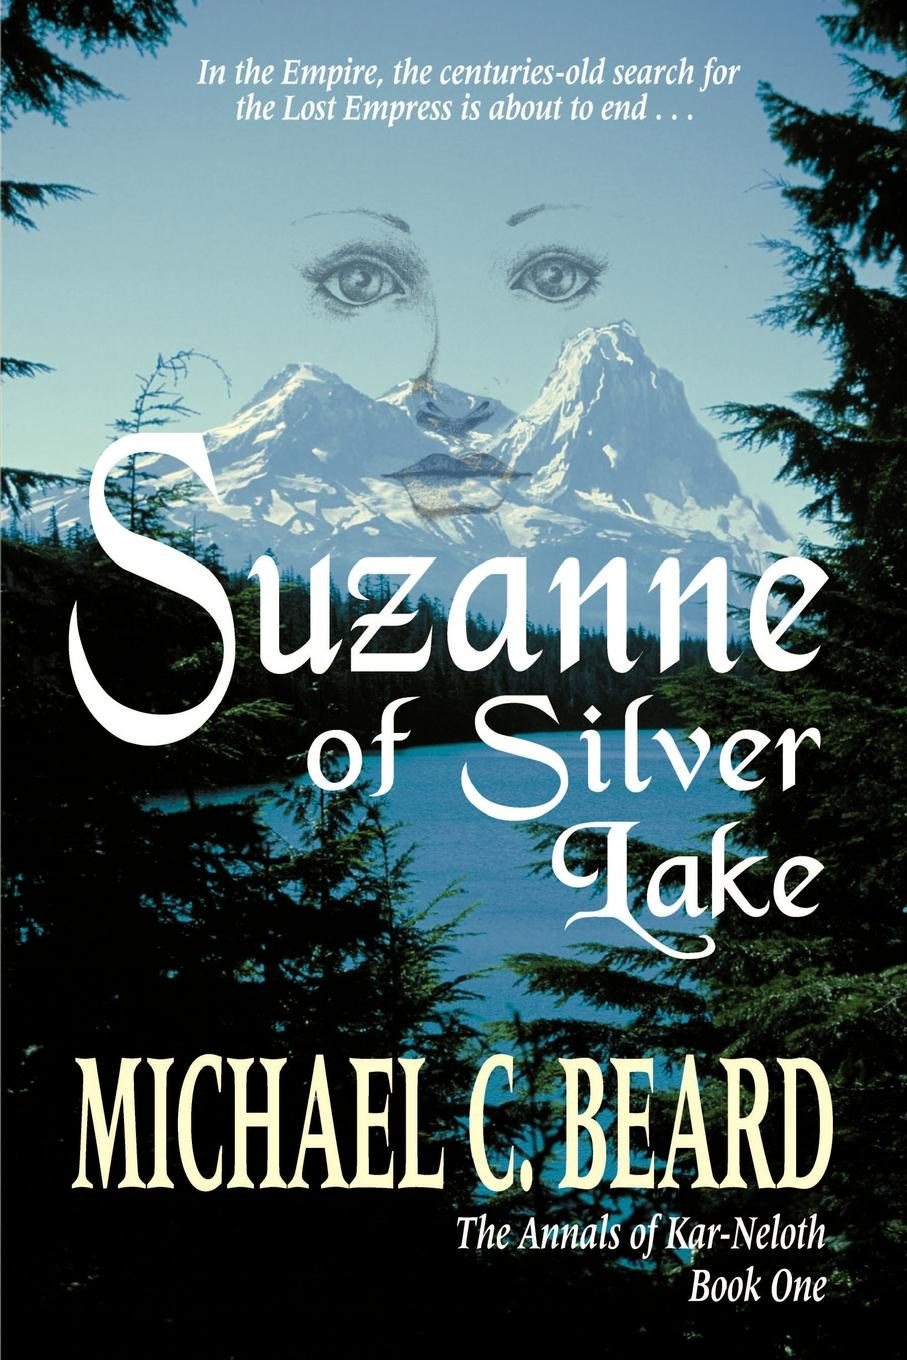 Michael C. Beard Suzanne of Silver Lake wood michael in search of the dark ages